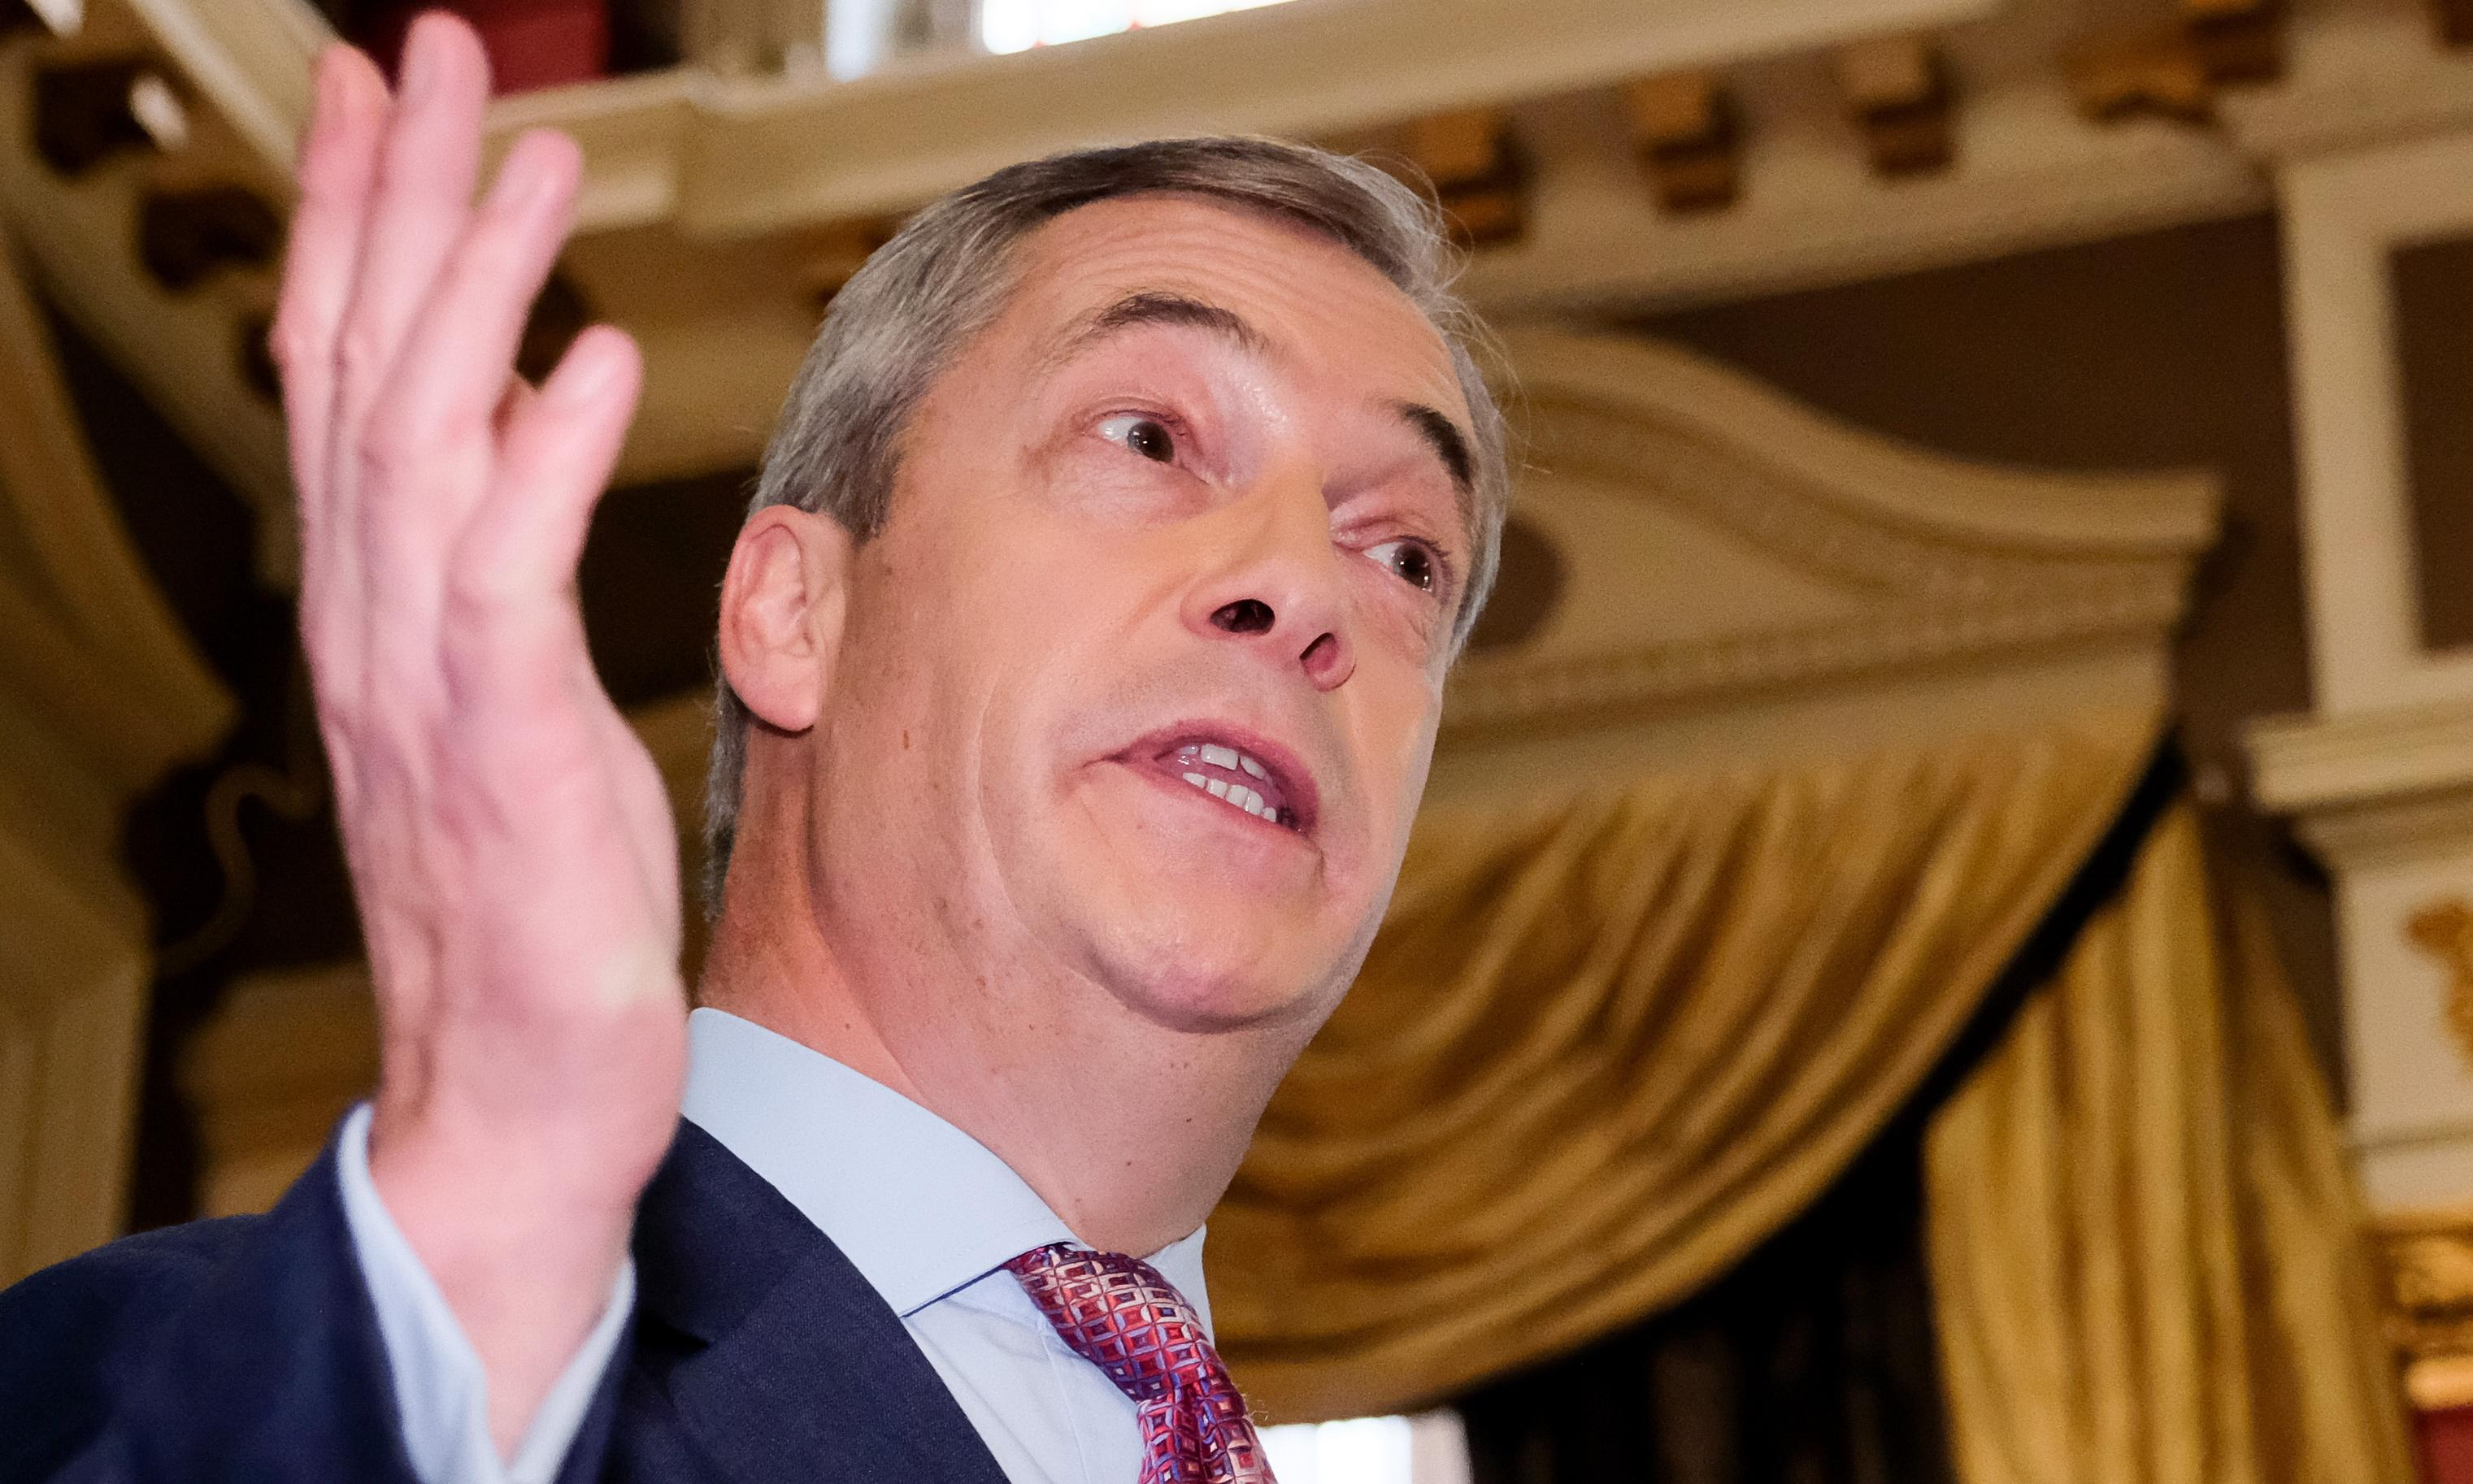 Tuesday briefing: Farage bombshell fires up campaign